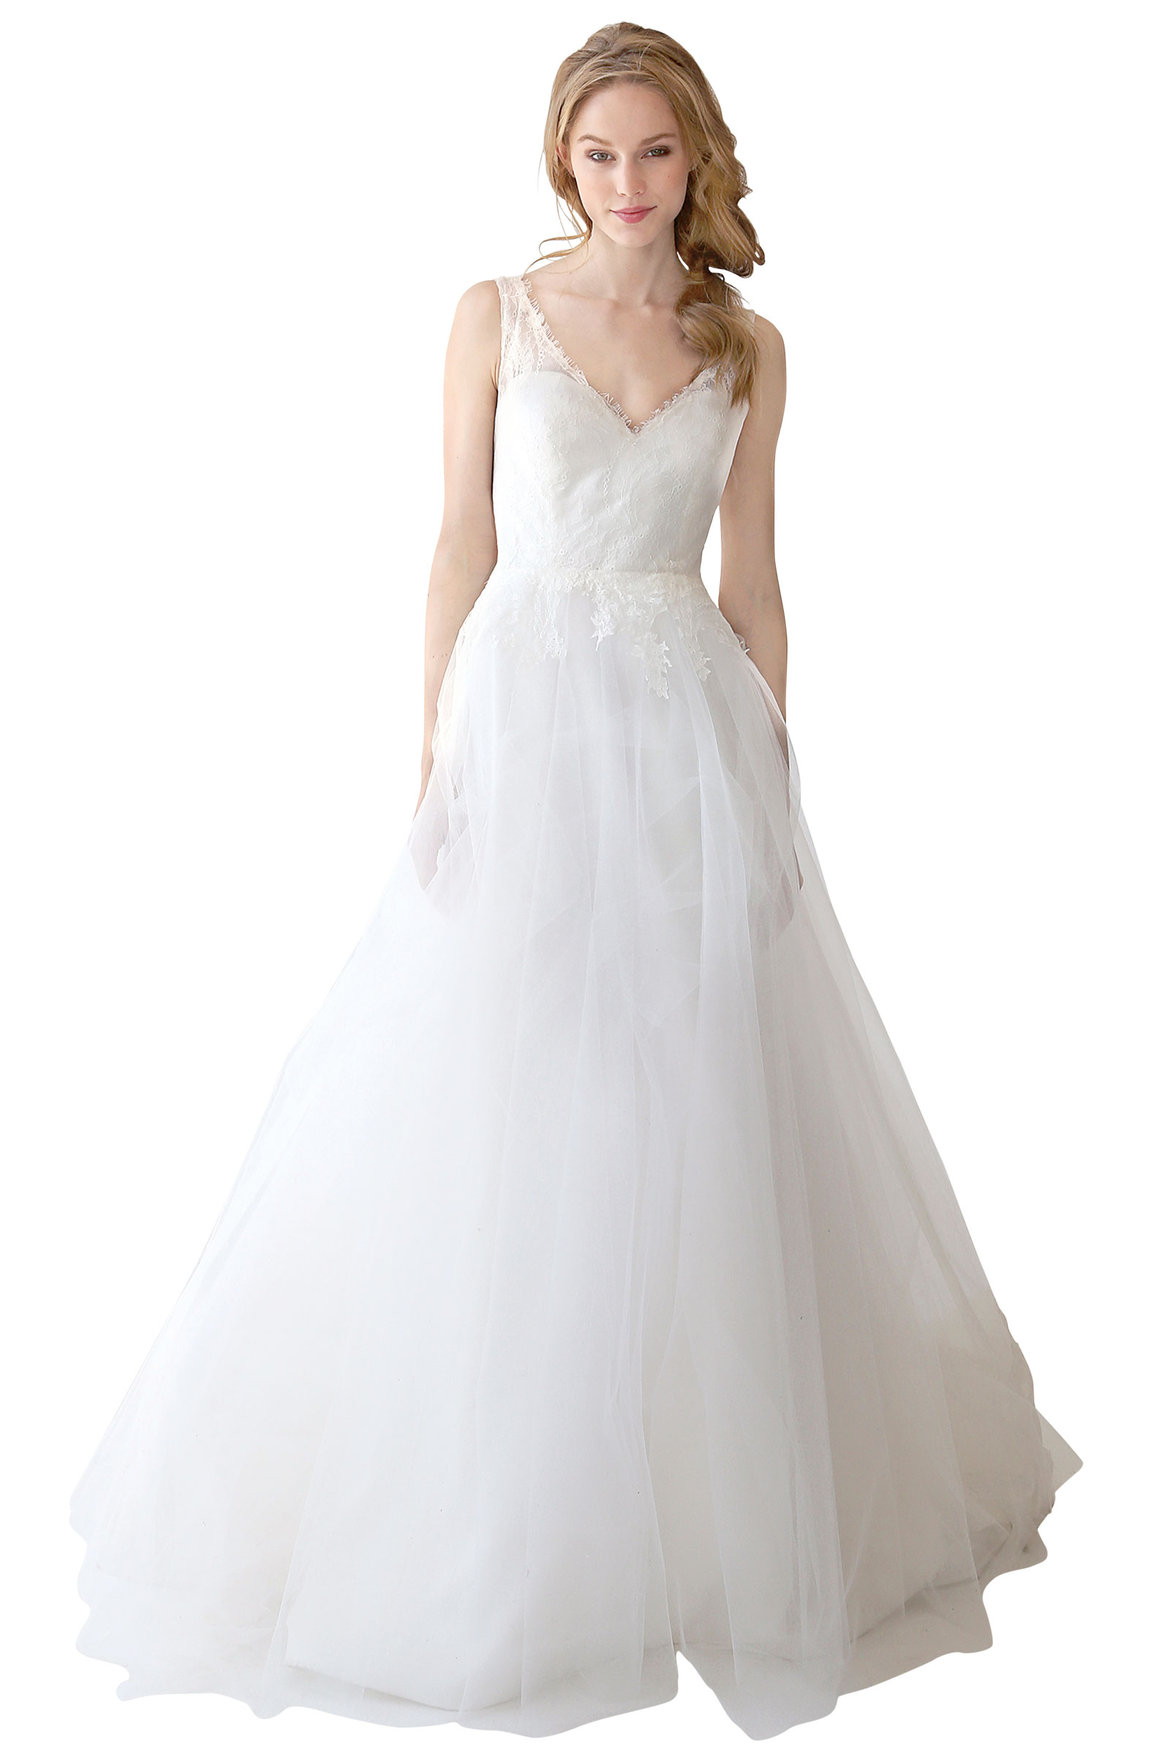 Best Wedding Dress For Your Body Type Page 3